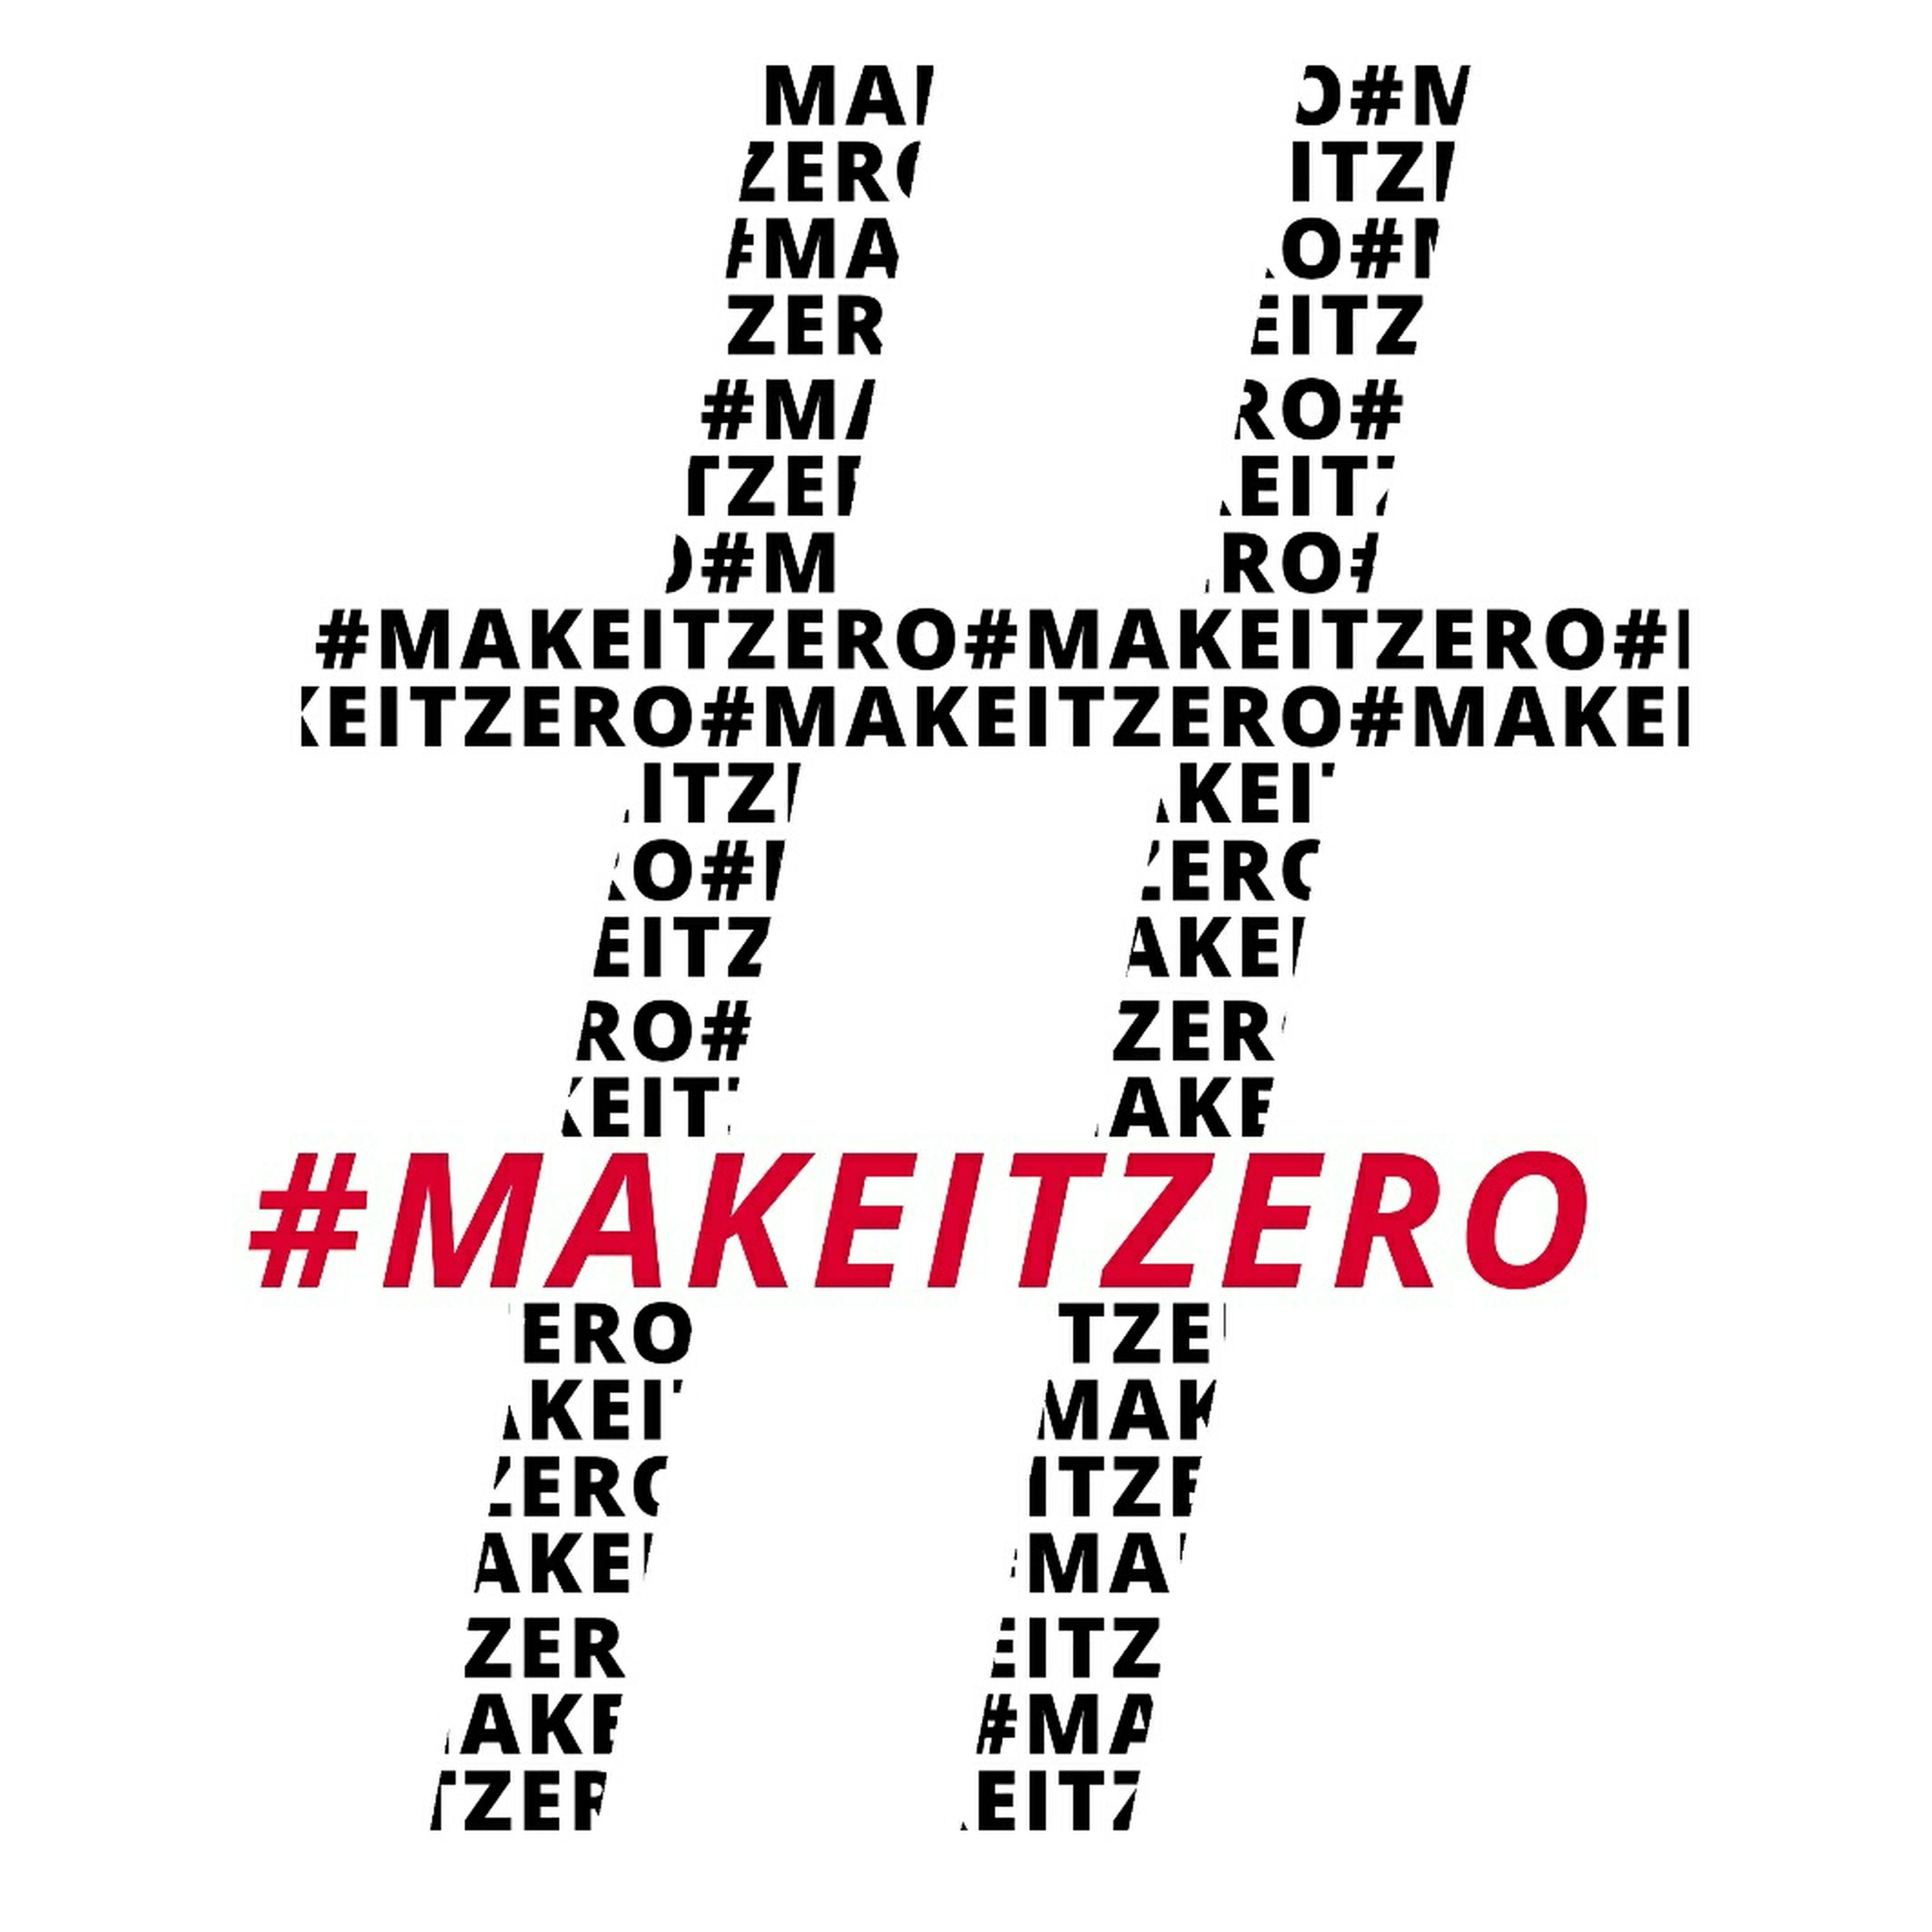 Makeitzero all around the US let's Makeadifference , save a child. say Nosextrafficking Nohumantrafficking